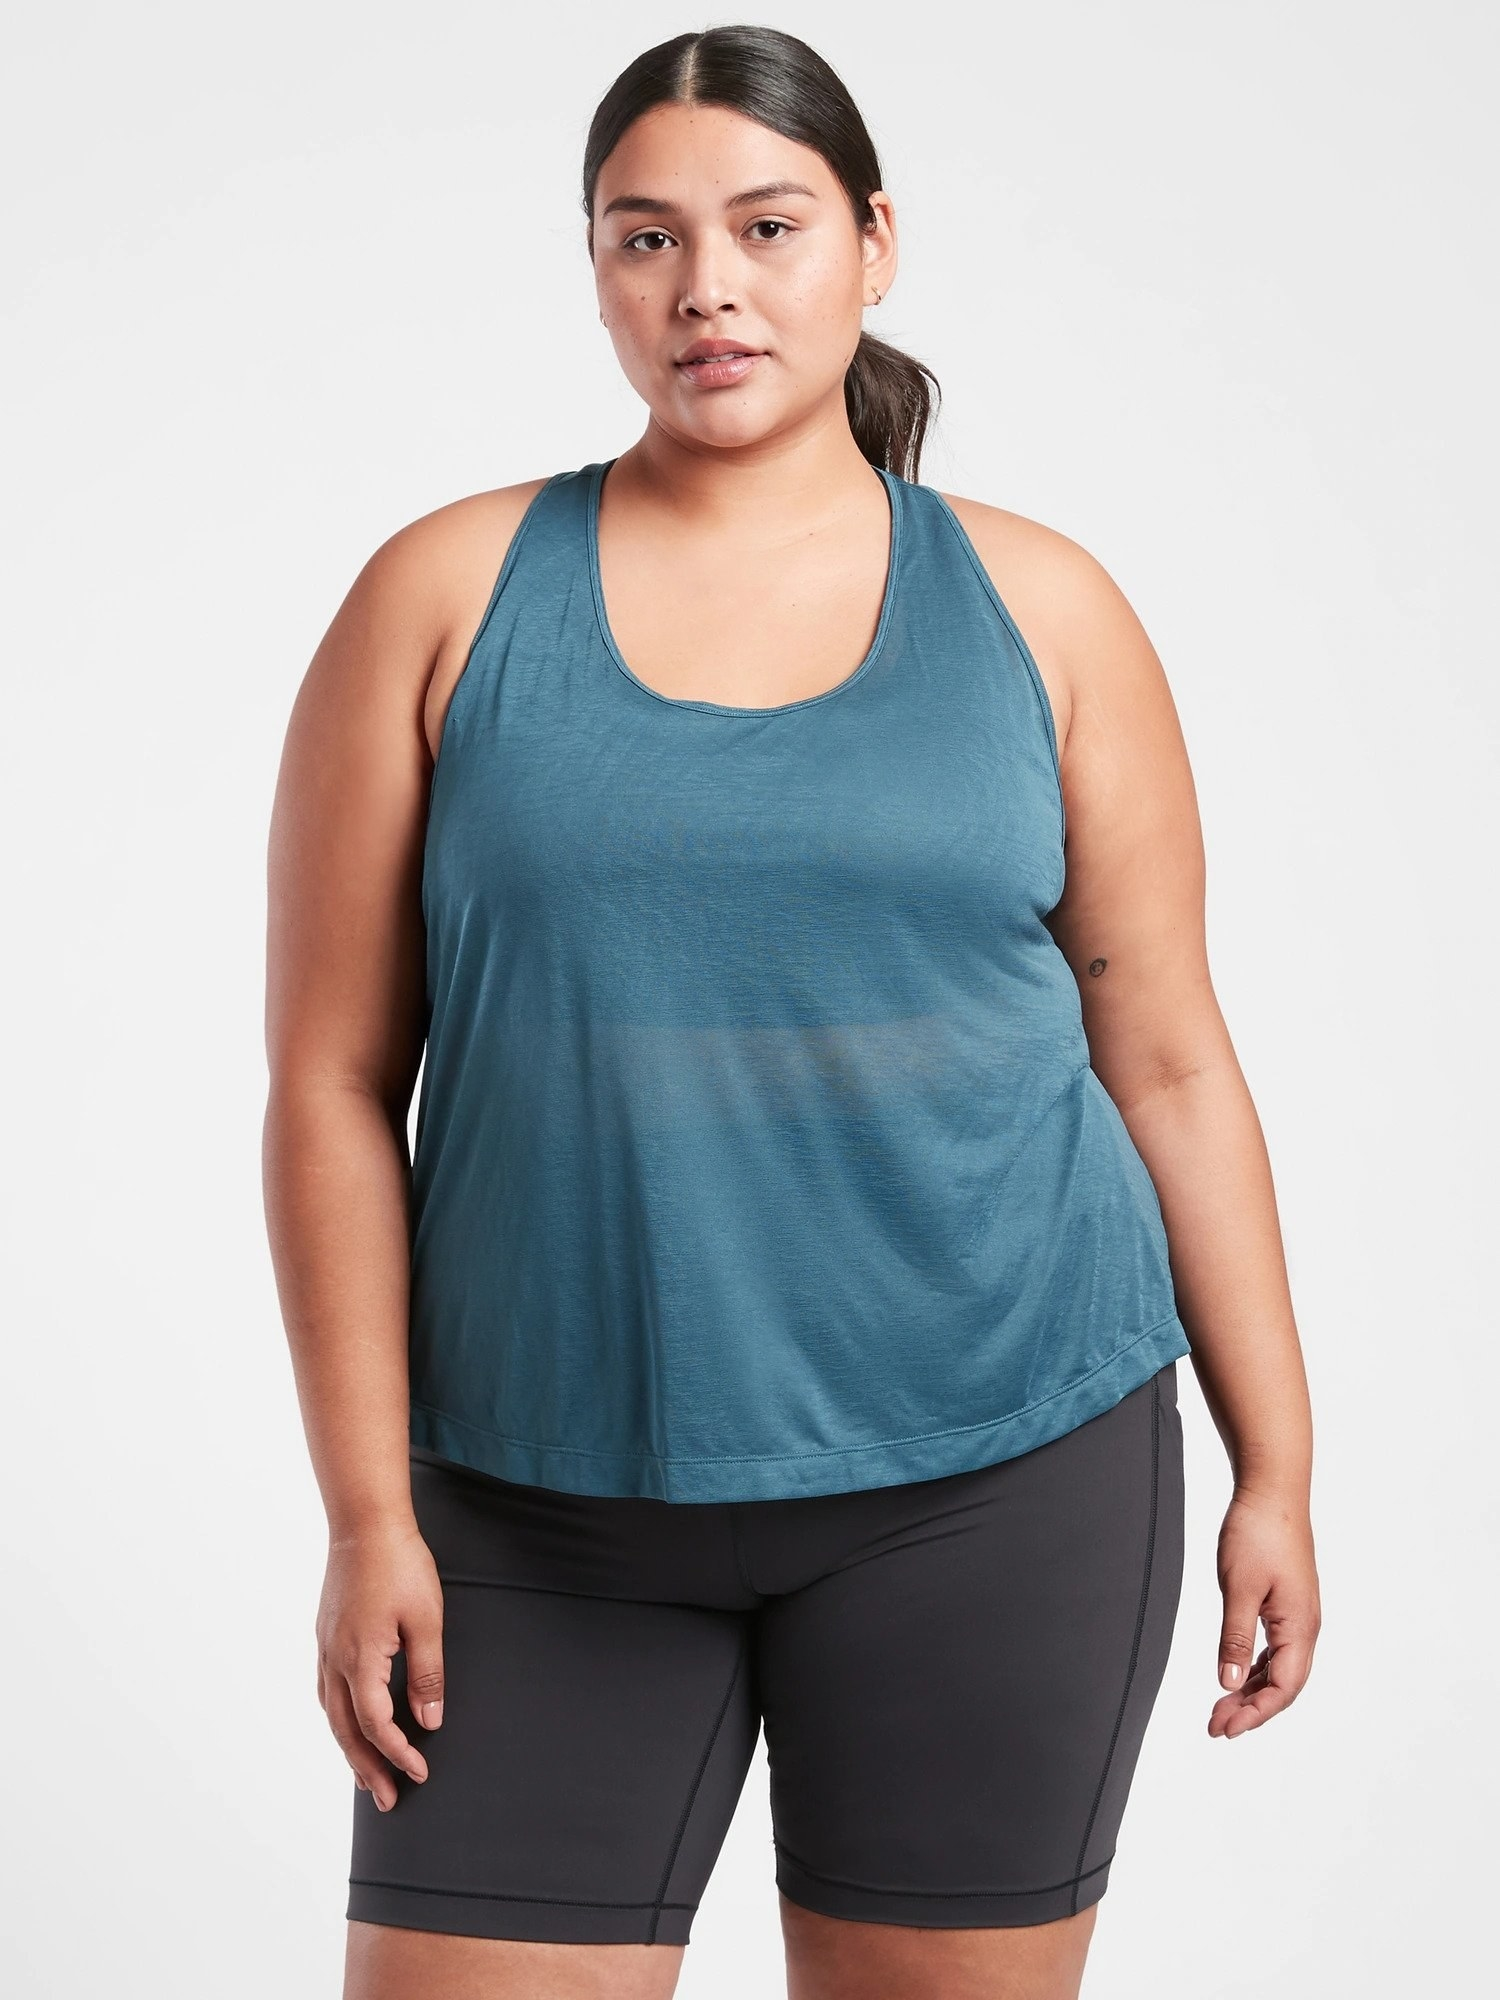 model in flowy, almost-sheer blue workout tank and leggings